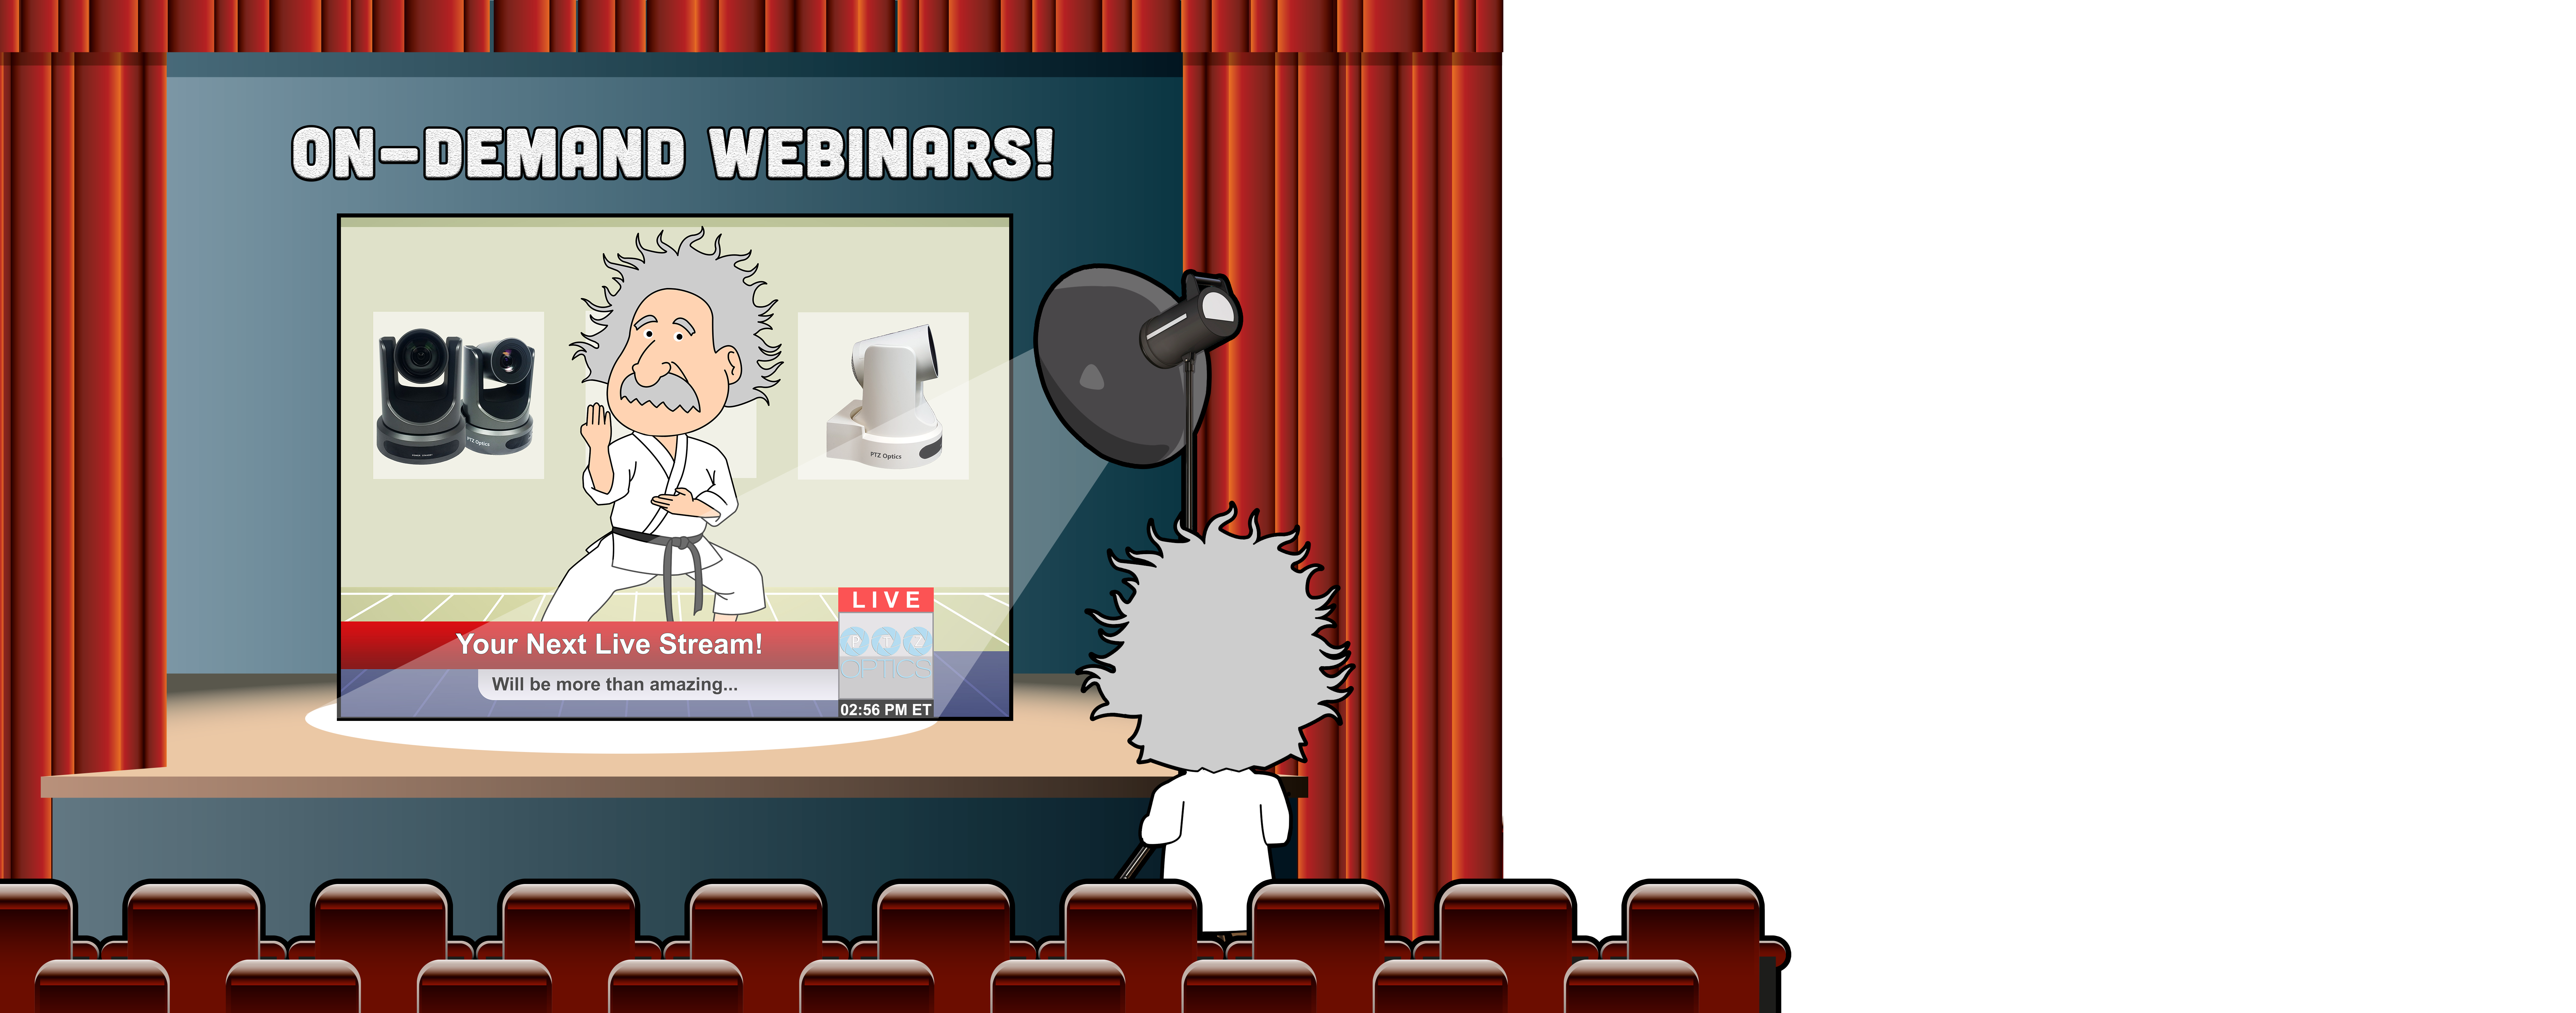 on_demand_webinars_review.png